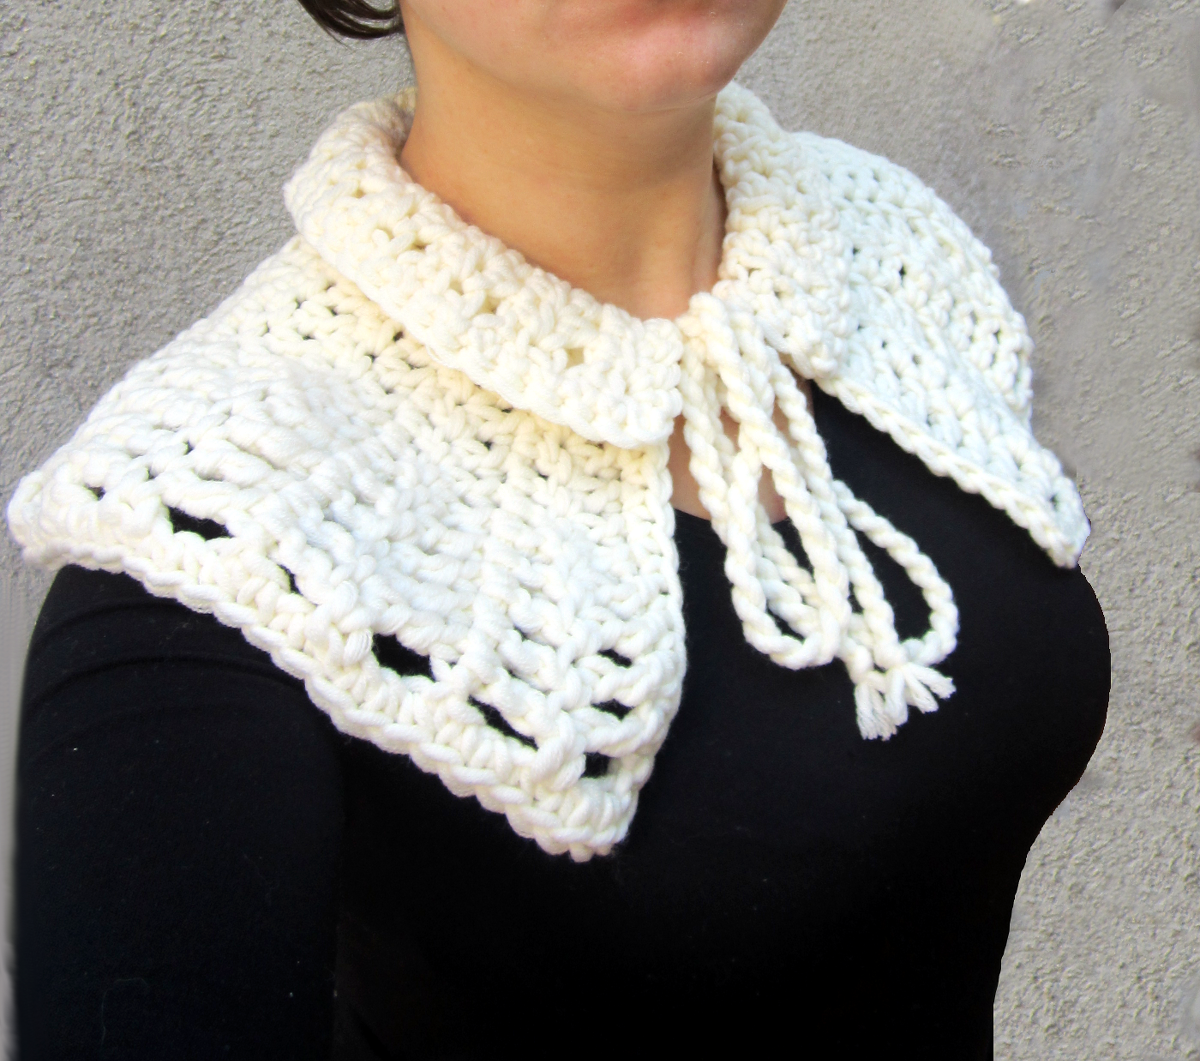 https://www.etsy.com/listing/212733554/free-shipping-cream-crochet?ref=shop_home_active_20